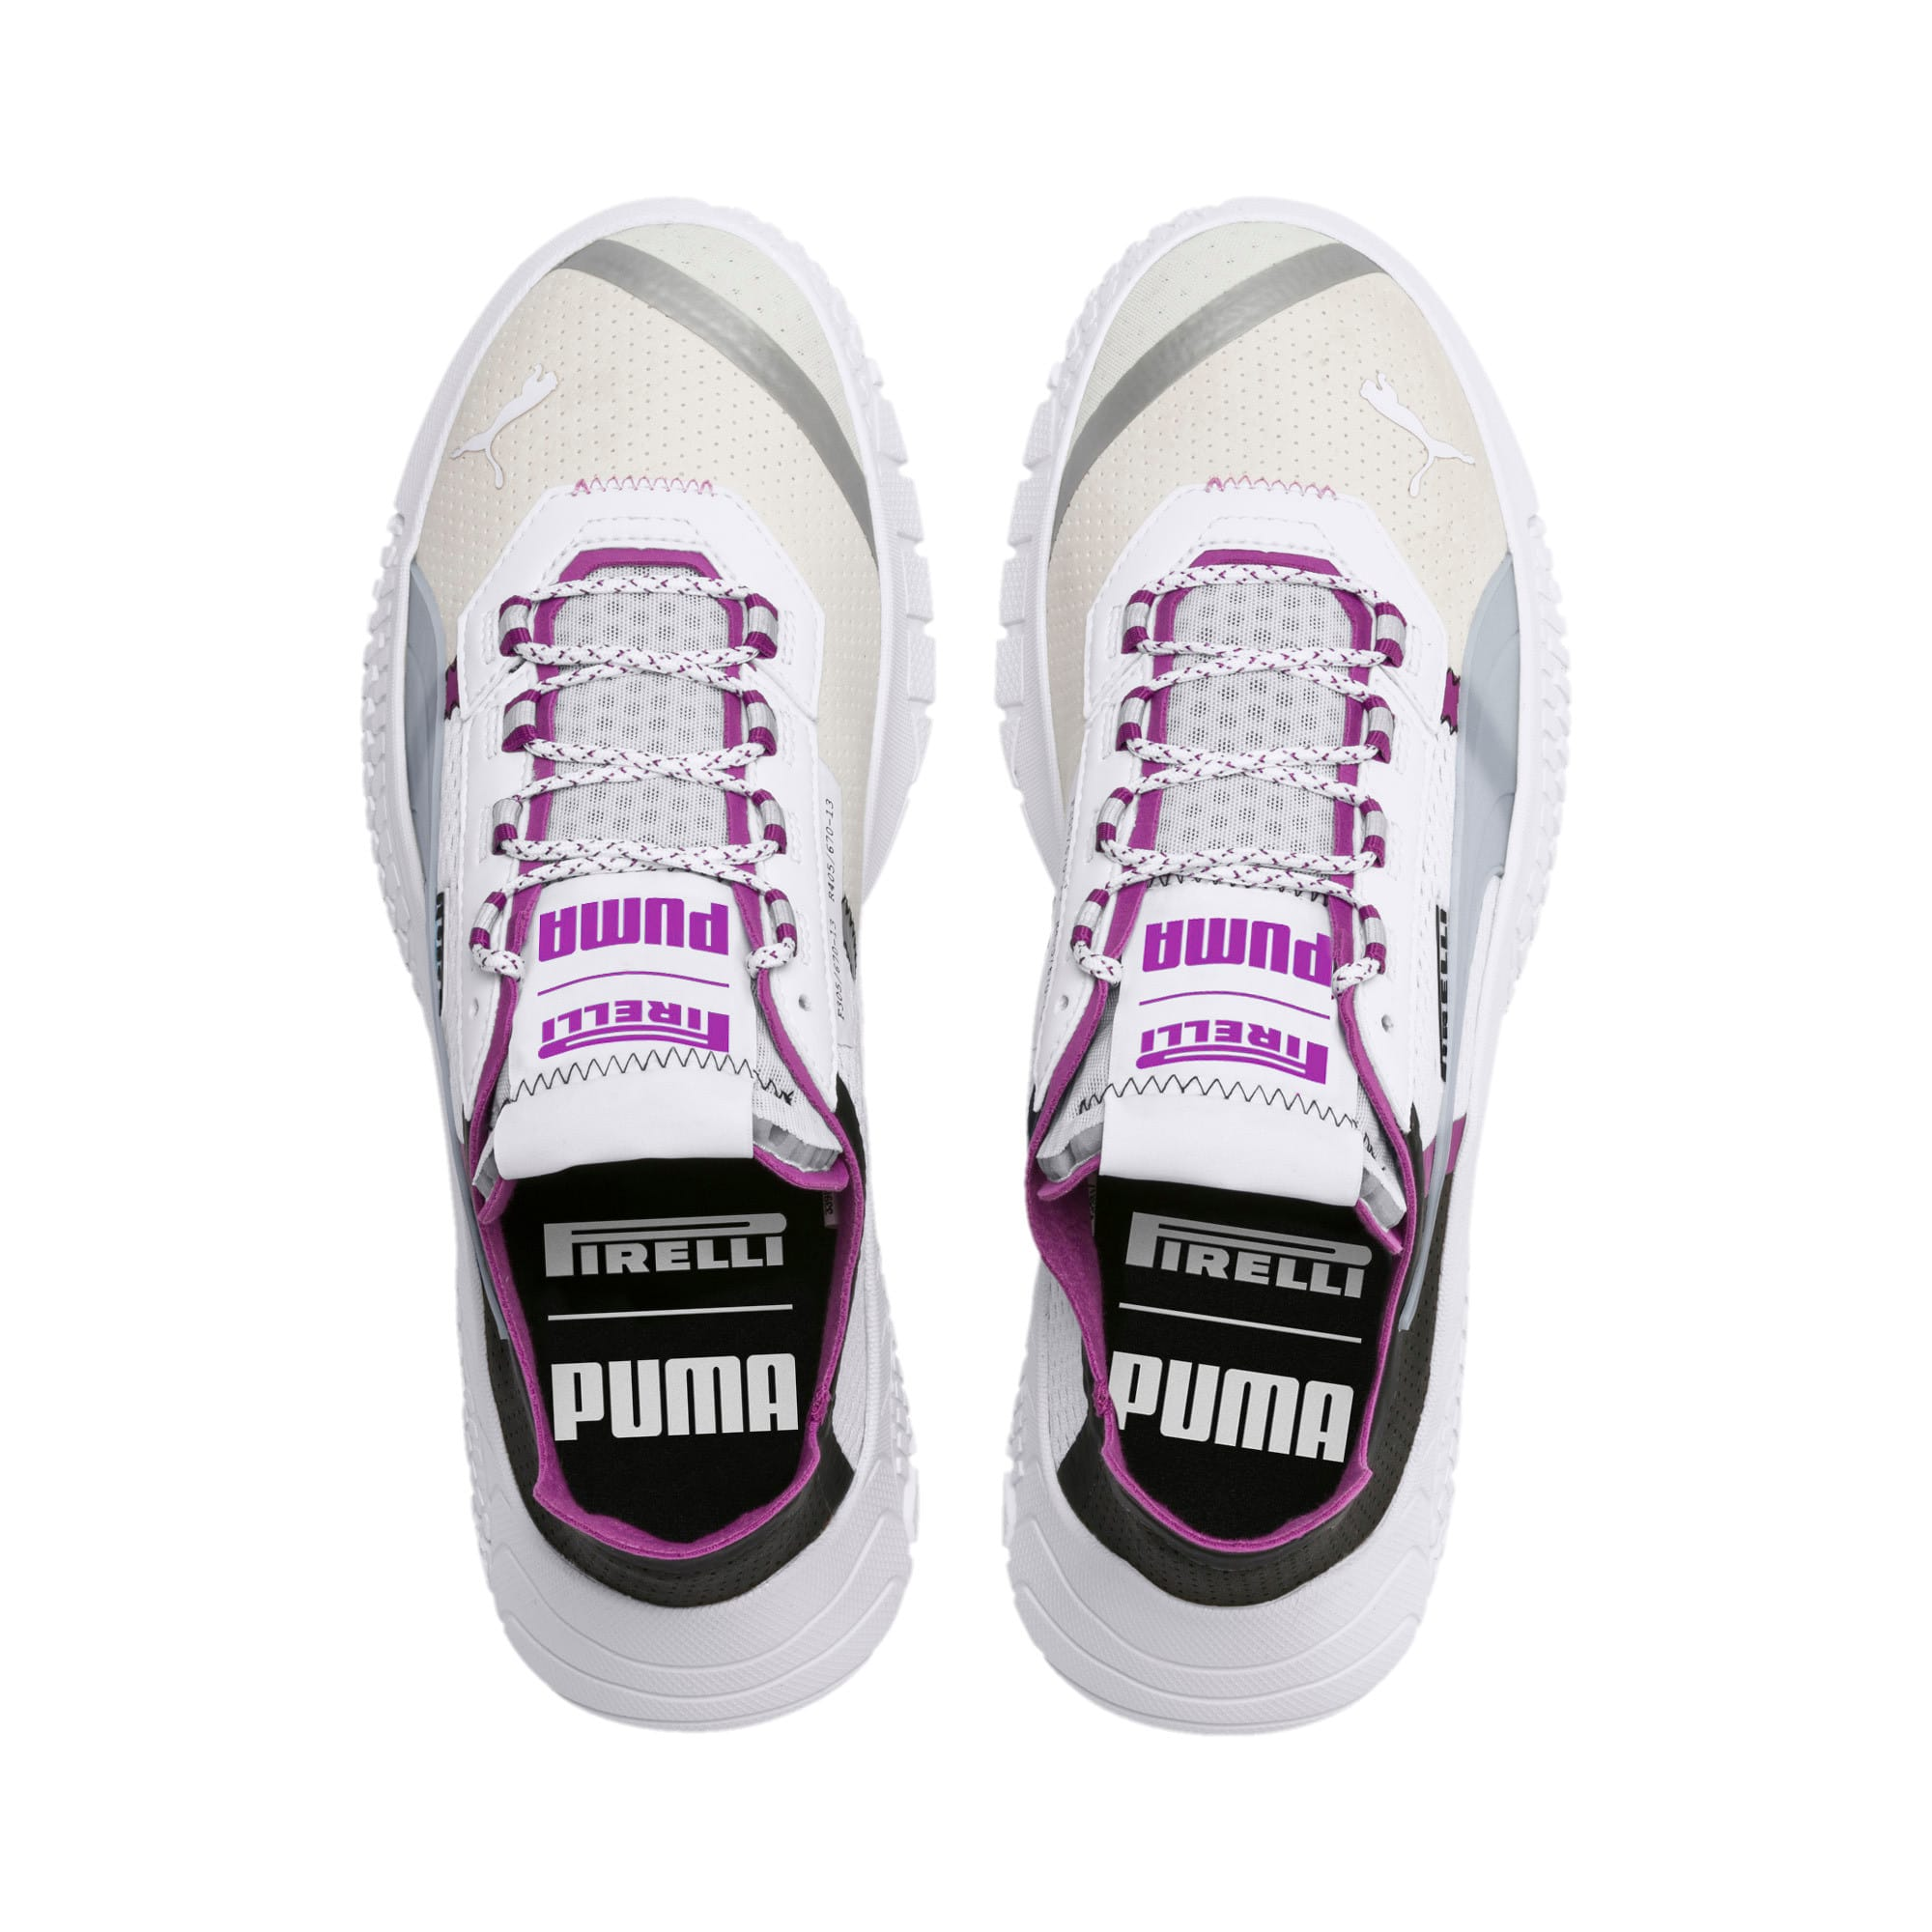 Thumbnail 7 of Scarpe da ginnastica Pirelli Replicat-X, White-Hyacinth Viol-Red, medium